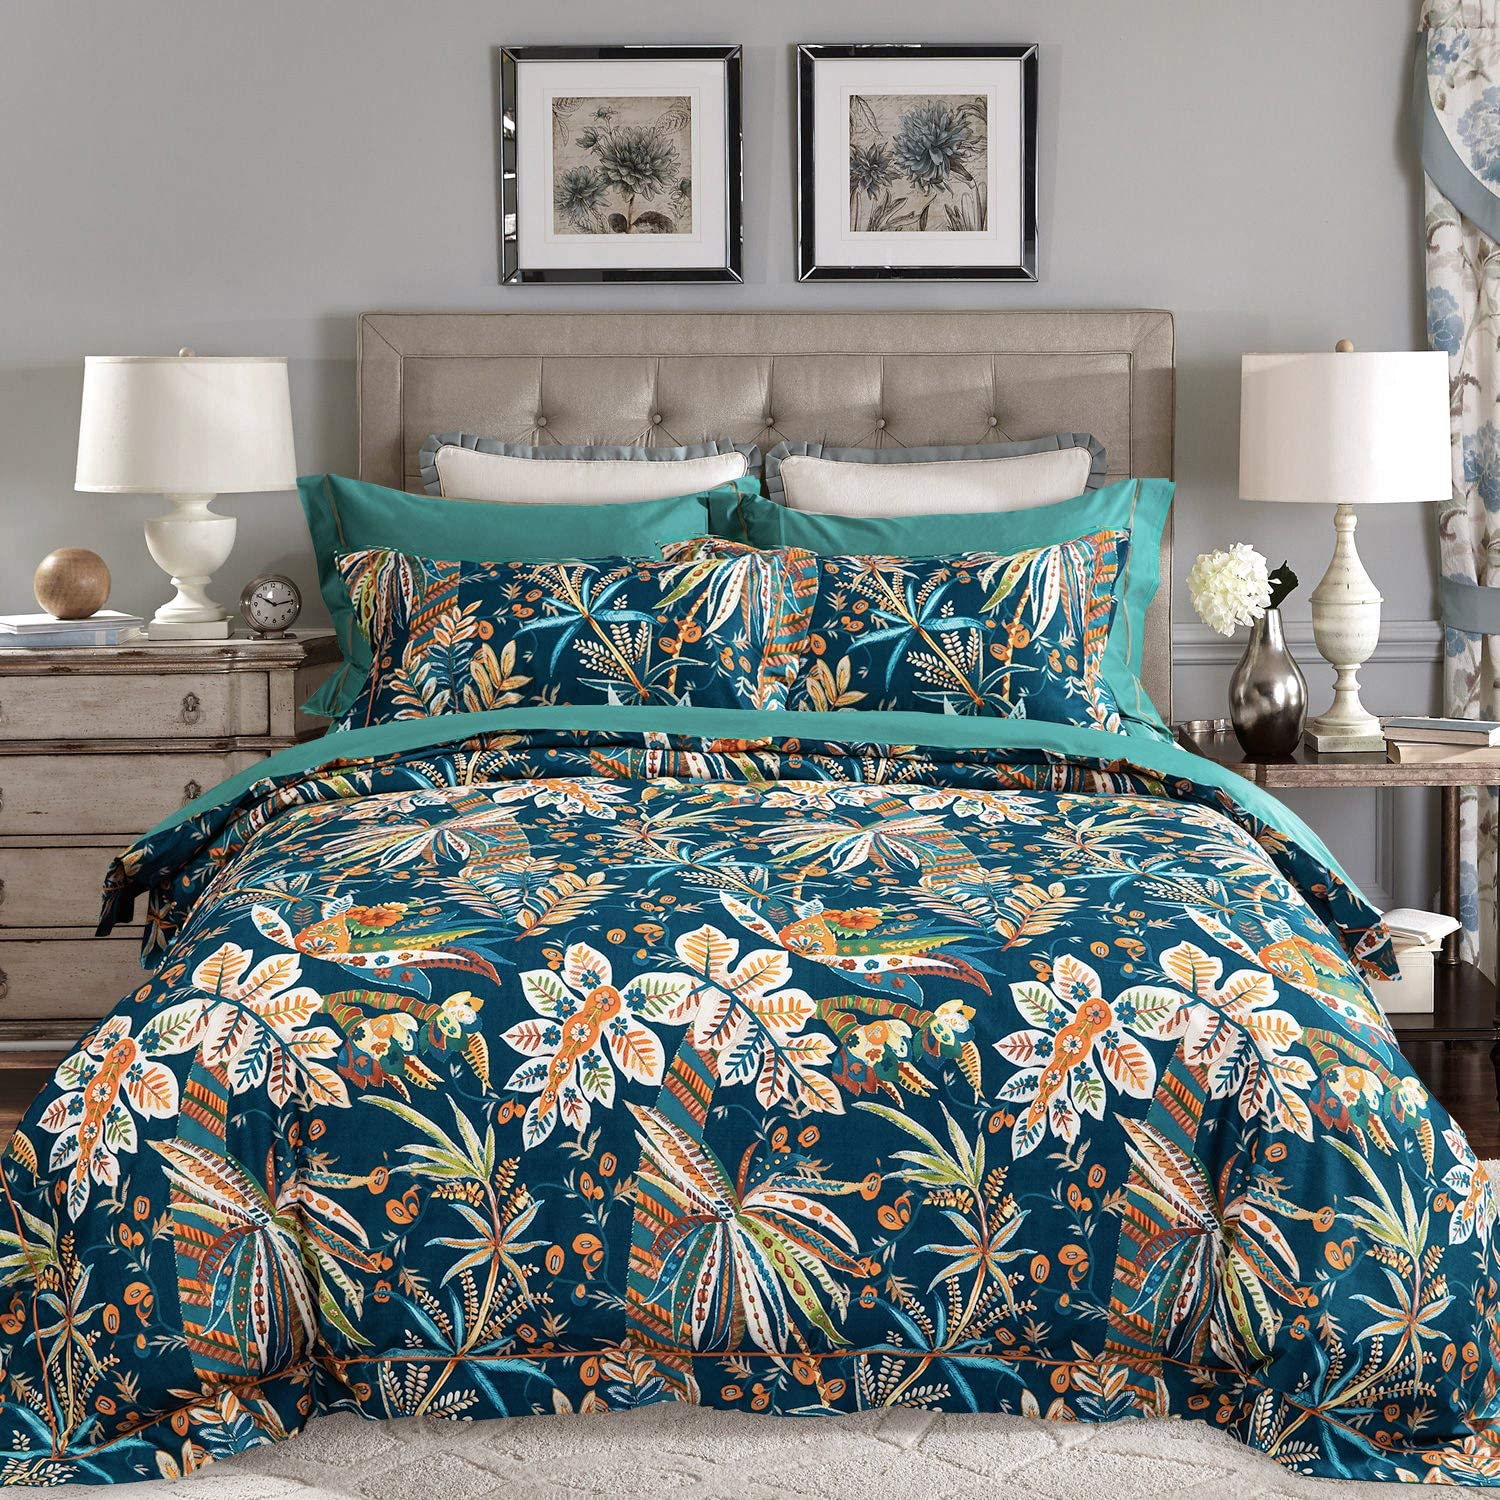 JELLYMONI Green Flower 100% Egyptian Cotton Duvet Cover Set,3 Pieces Leaves Pattern Floral Print Bedding Set with Double Zipper Closure. Reversible Duvet Cover King Size(104×90Inch)(No Comforter)